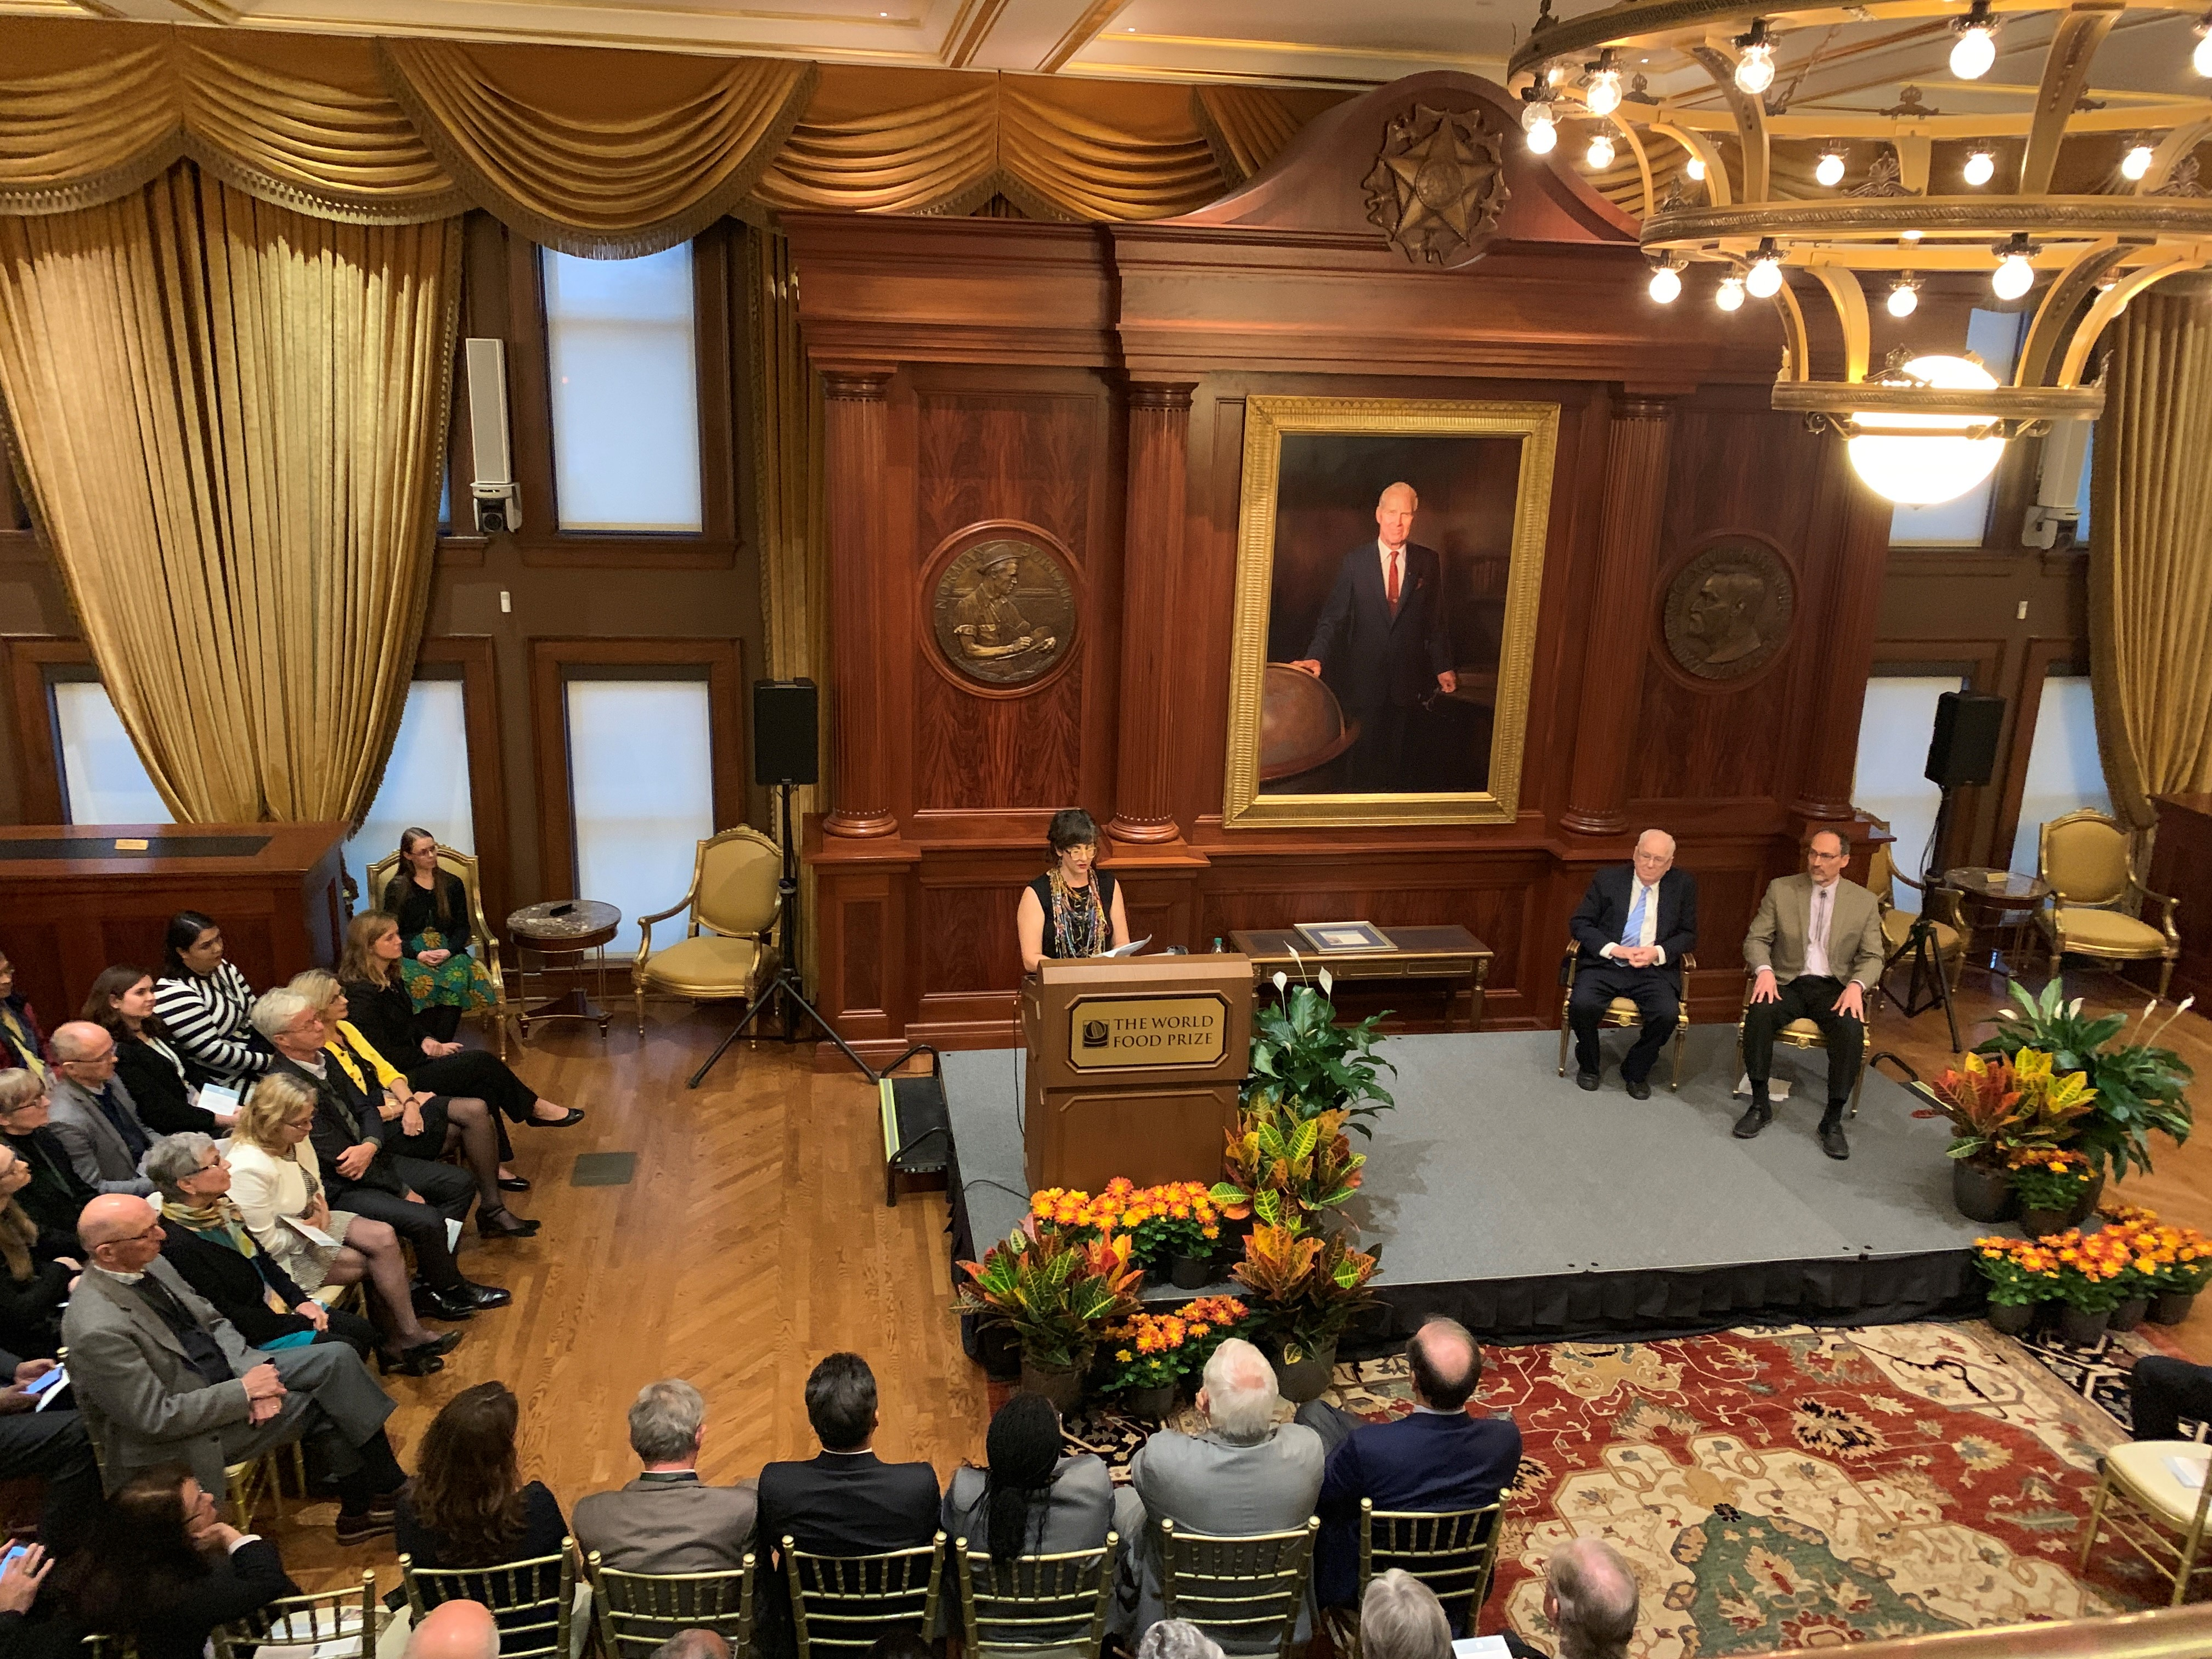 Hale Ann Tufan, recipient of the 2019 Norman E. Borlaug Award for Field Research and Application, speaks at the award ceremony. (Photo: Mary Donovan/CIMMYT)